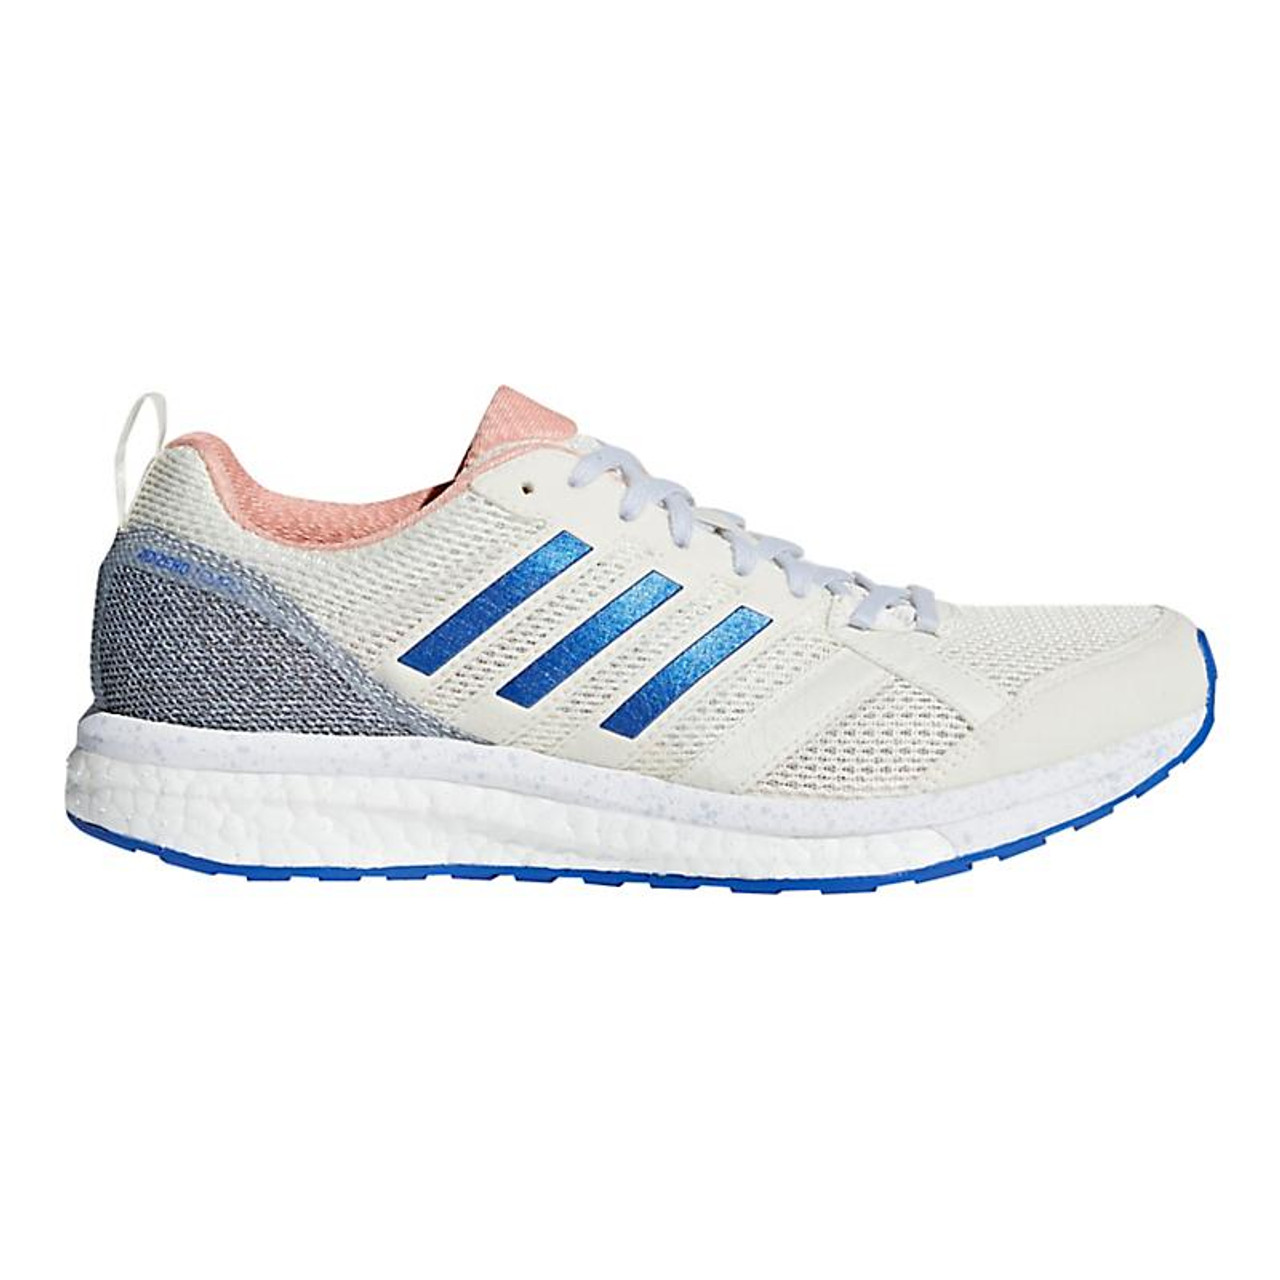 quality design 15667 d9cd6 Women's adidas adizero Tempo 9